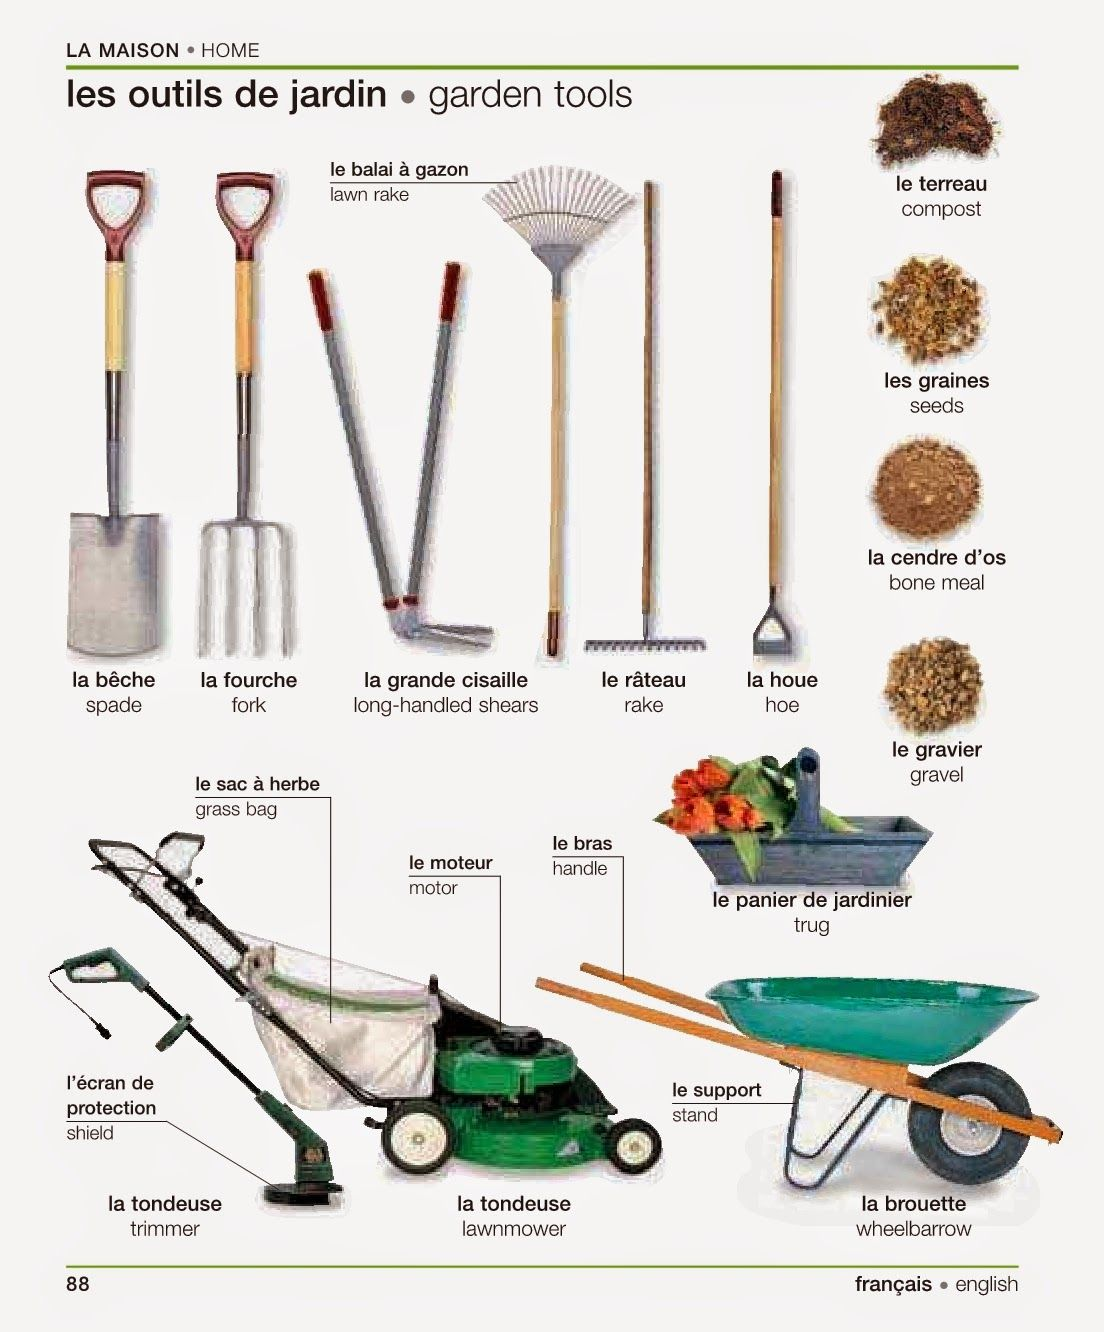 English for Tools for backyard gardening